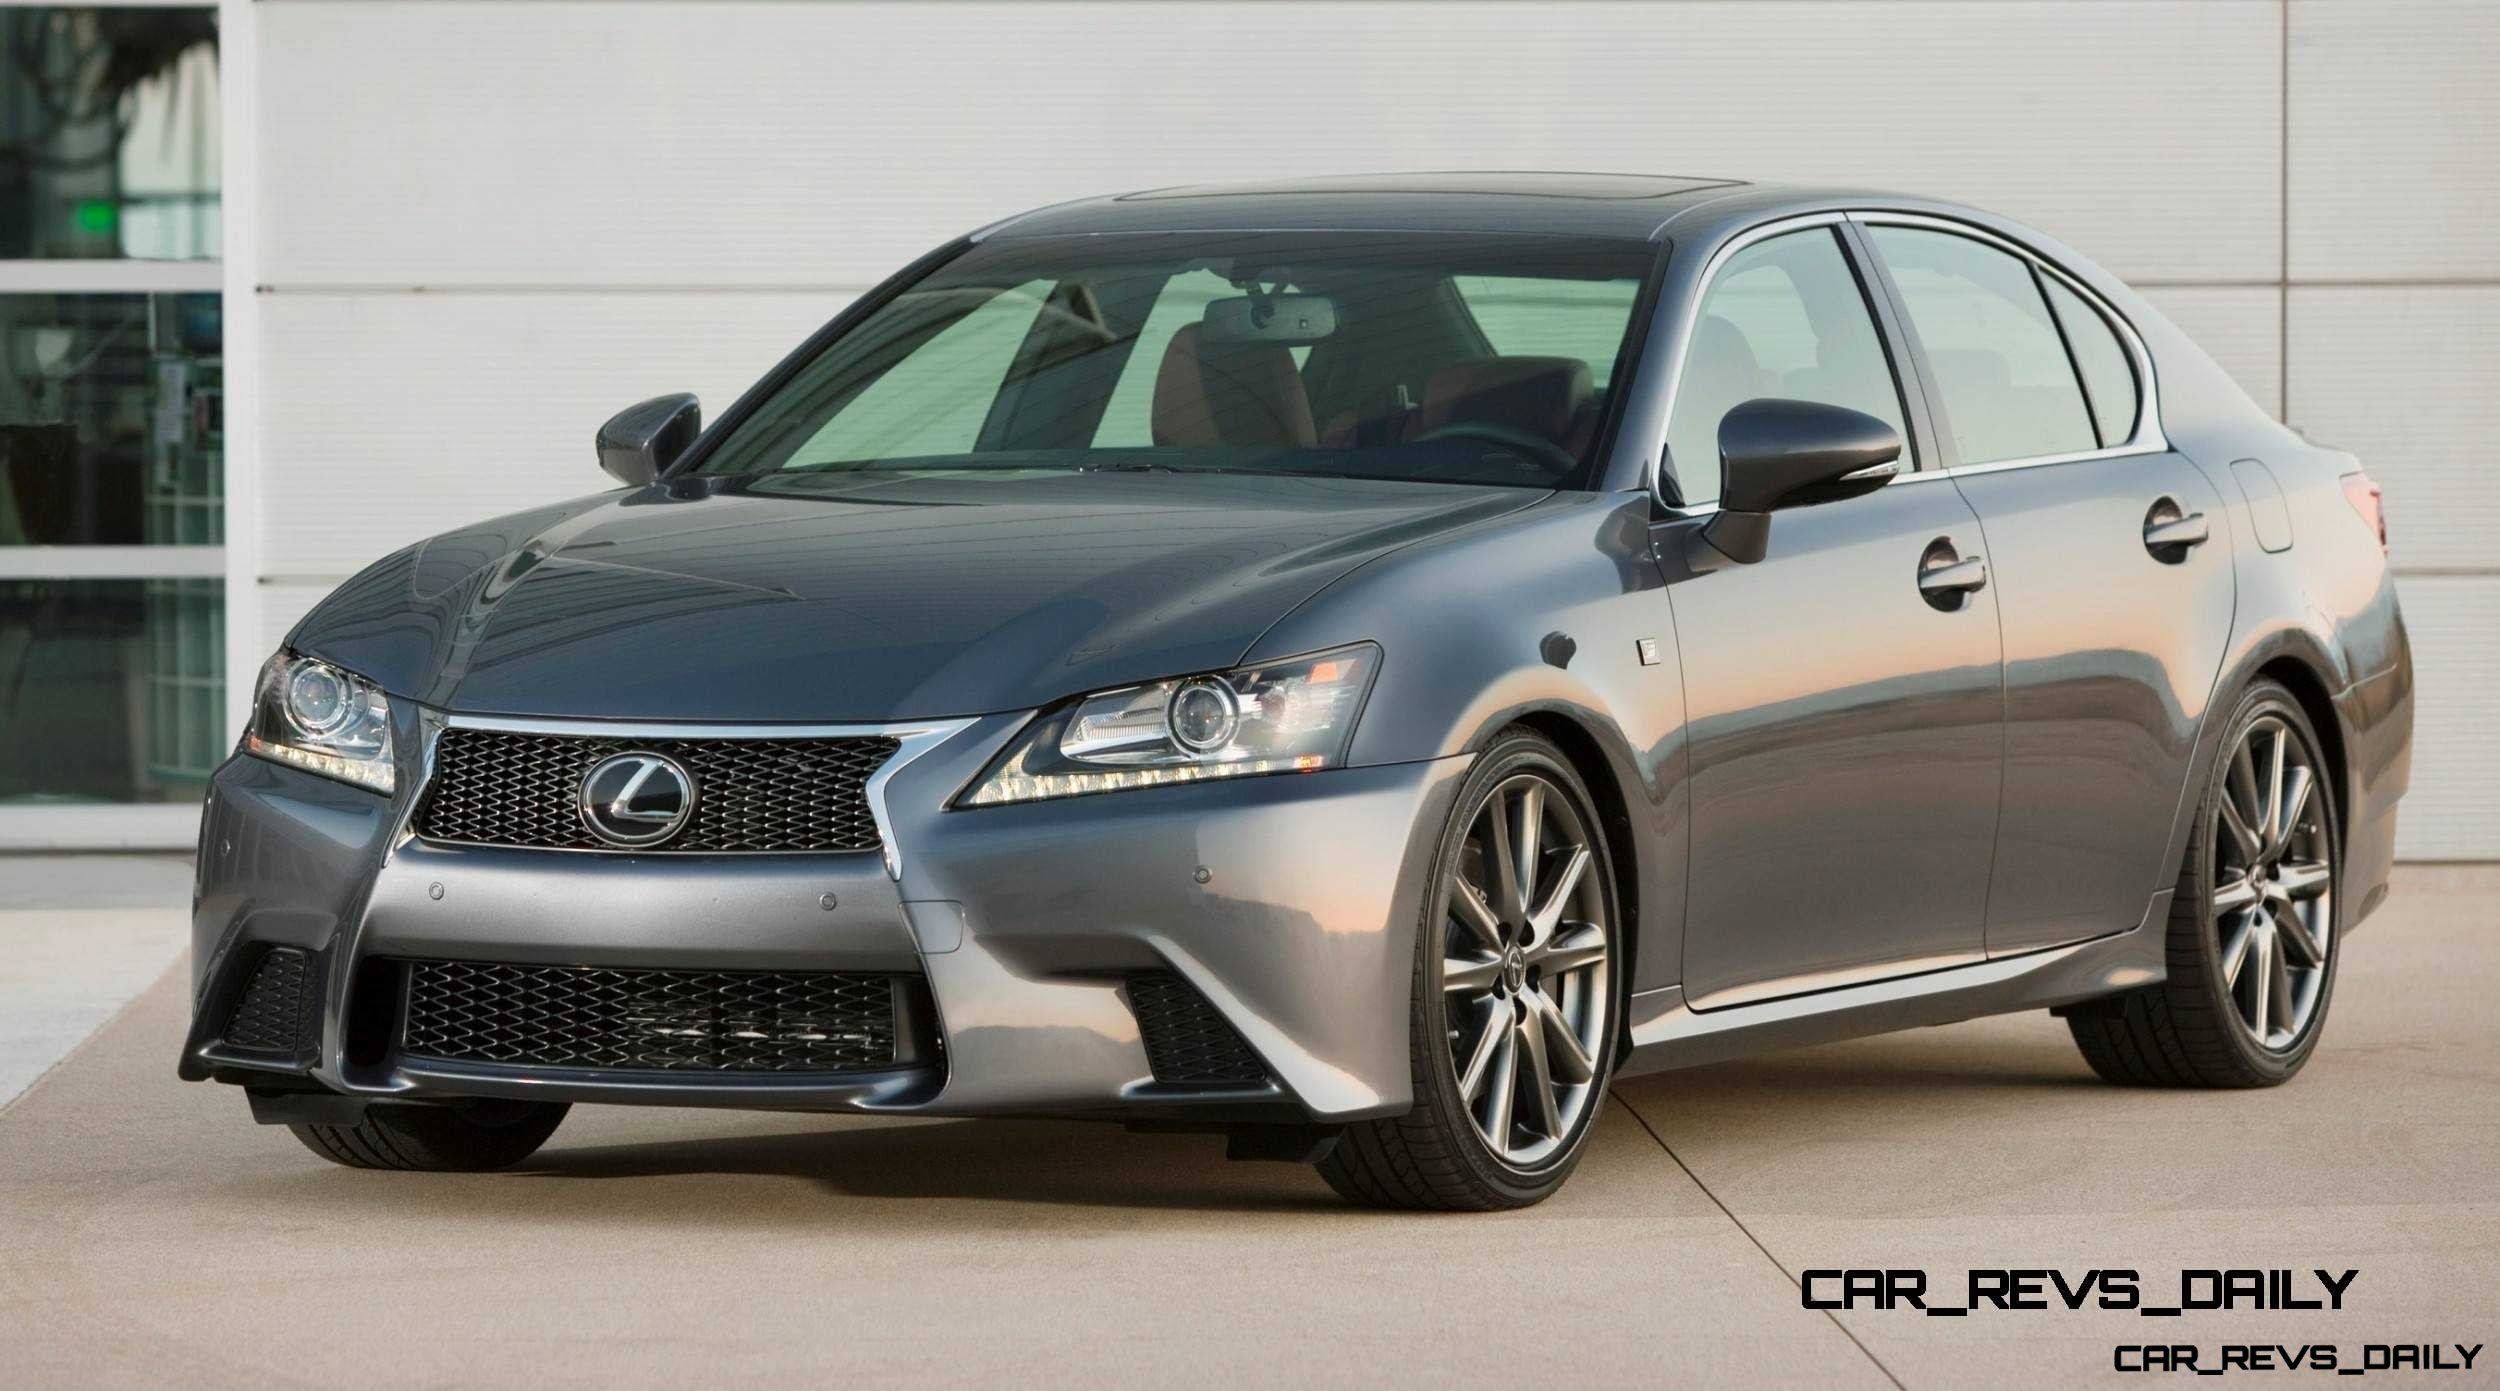 2014 lexus gs350 and gs f sport buyers guide info 18. Black Bedroom Furniture Sets. Home Design Ideas